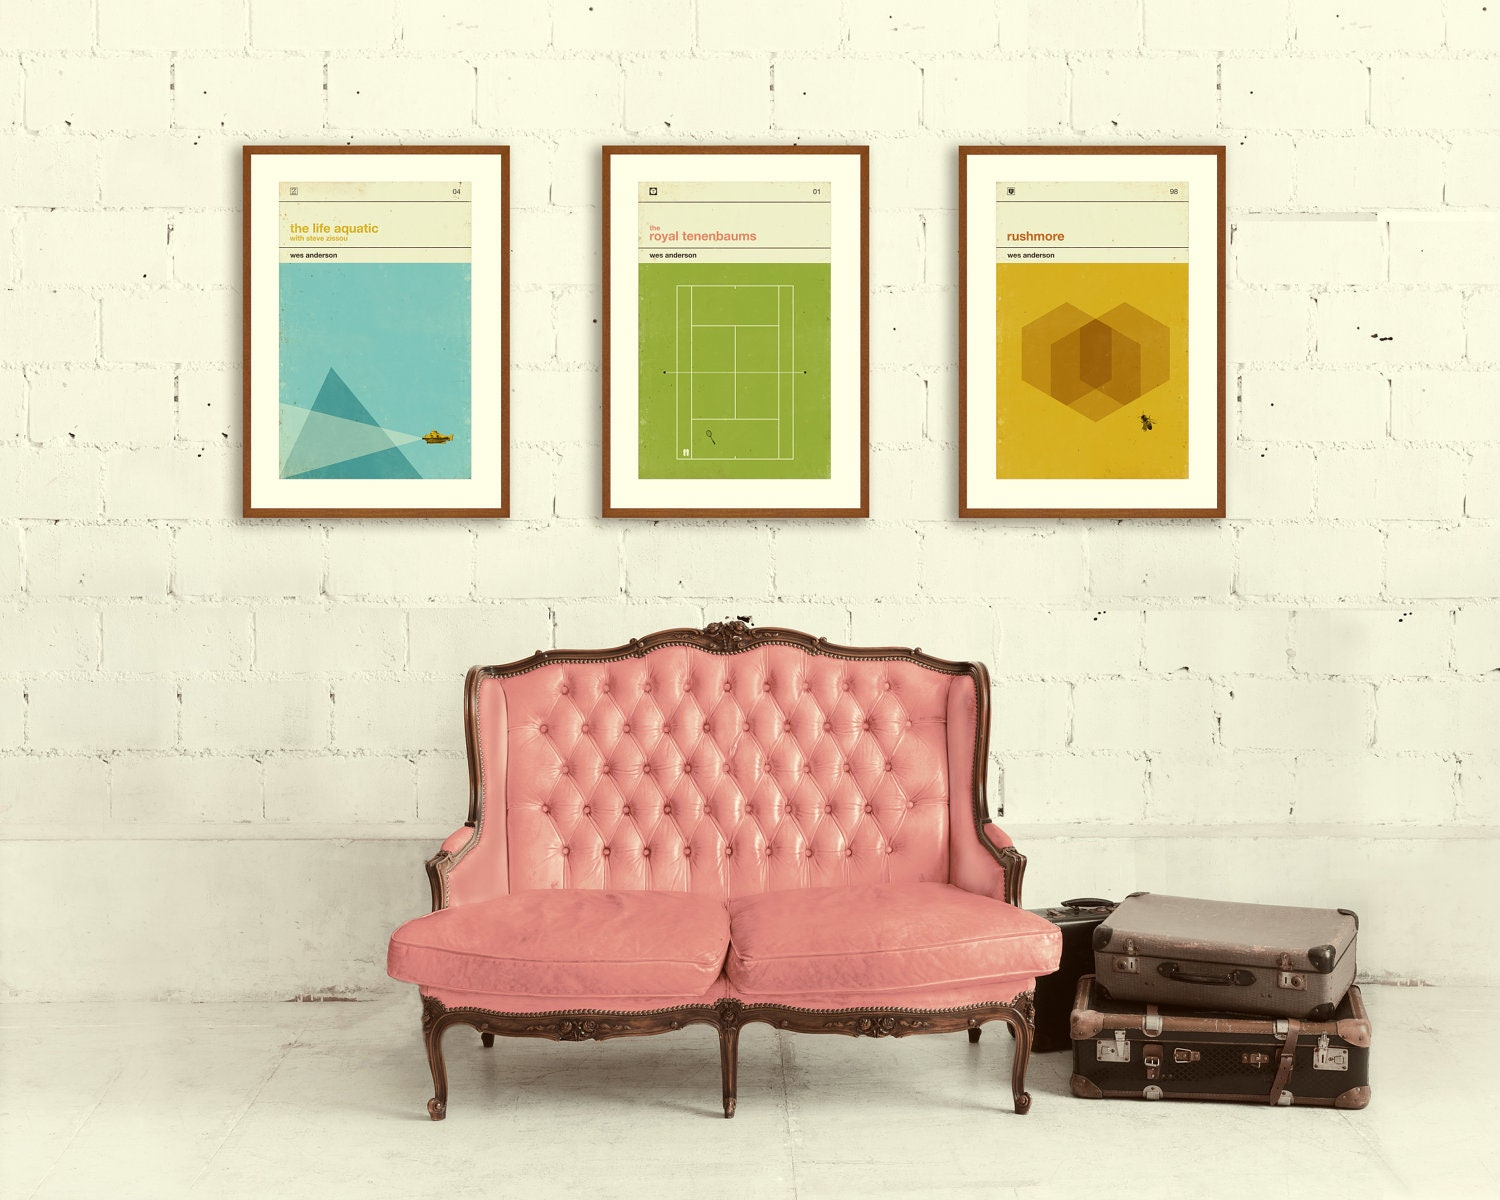 wes anderson inspired posters art print movie poster series etsy. Black Bedroom Furniture Sets. Home Design Ideas